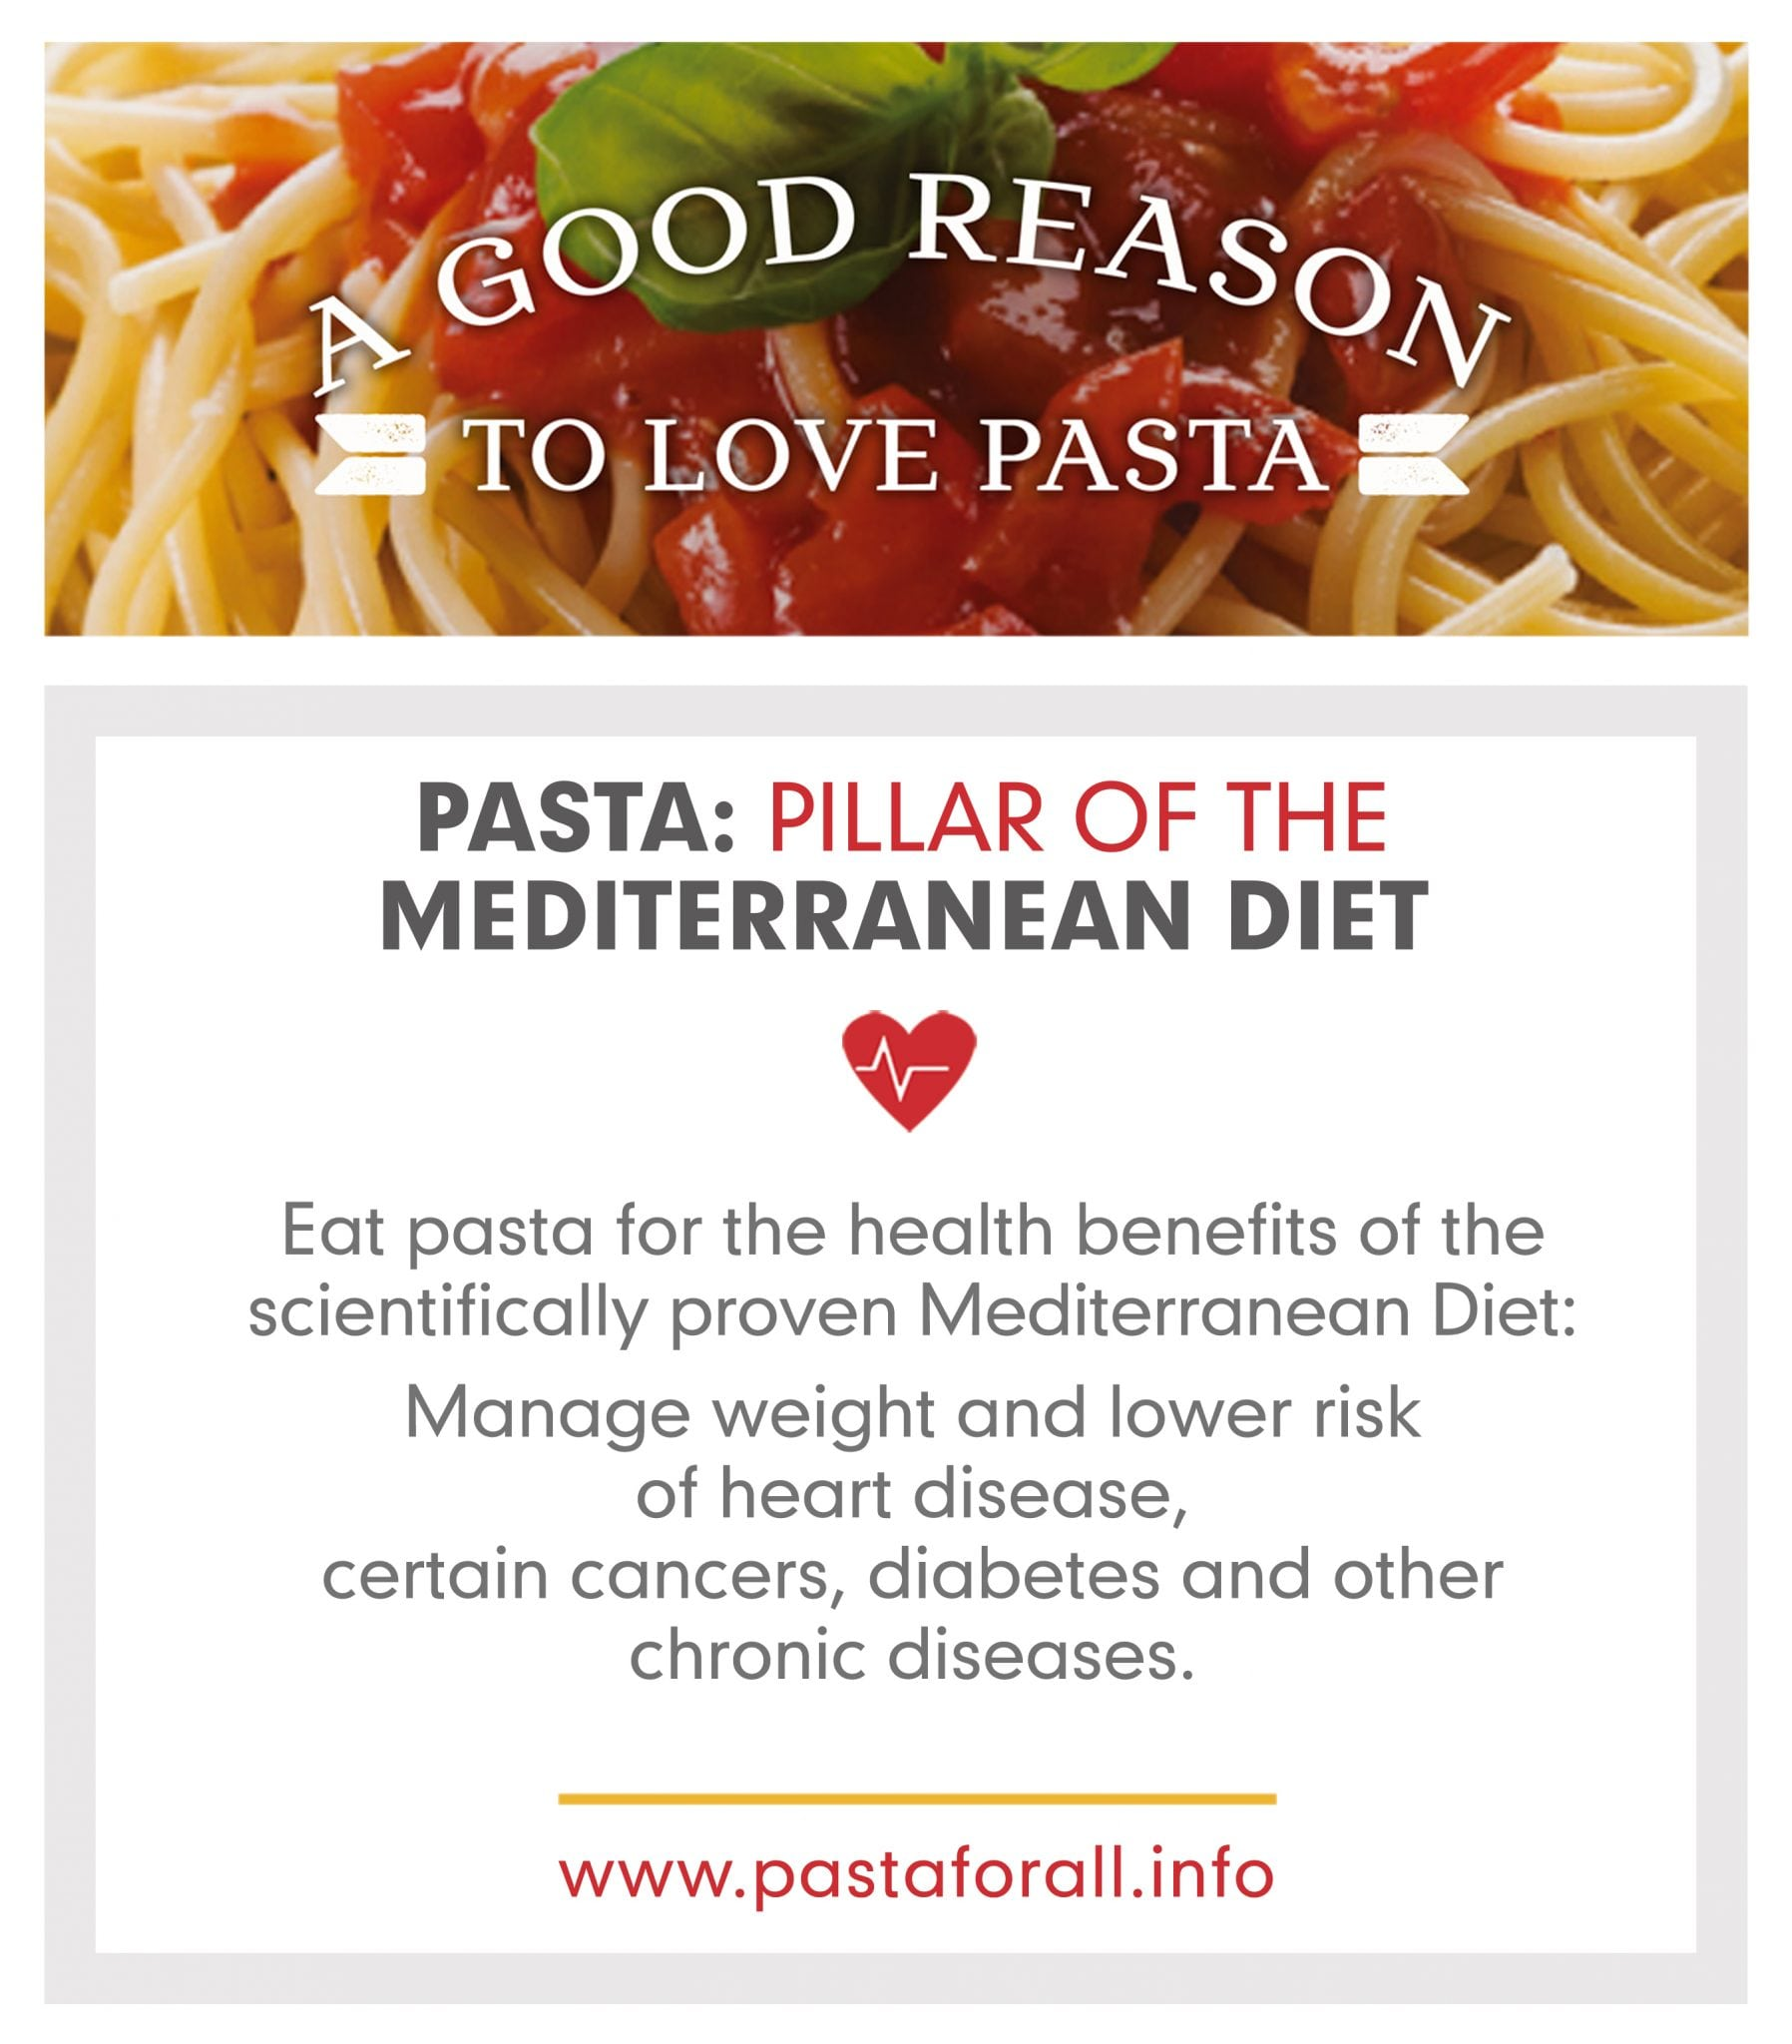 Pasta is the Pillar of the Mediterranean Diet